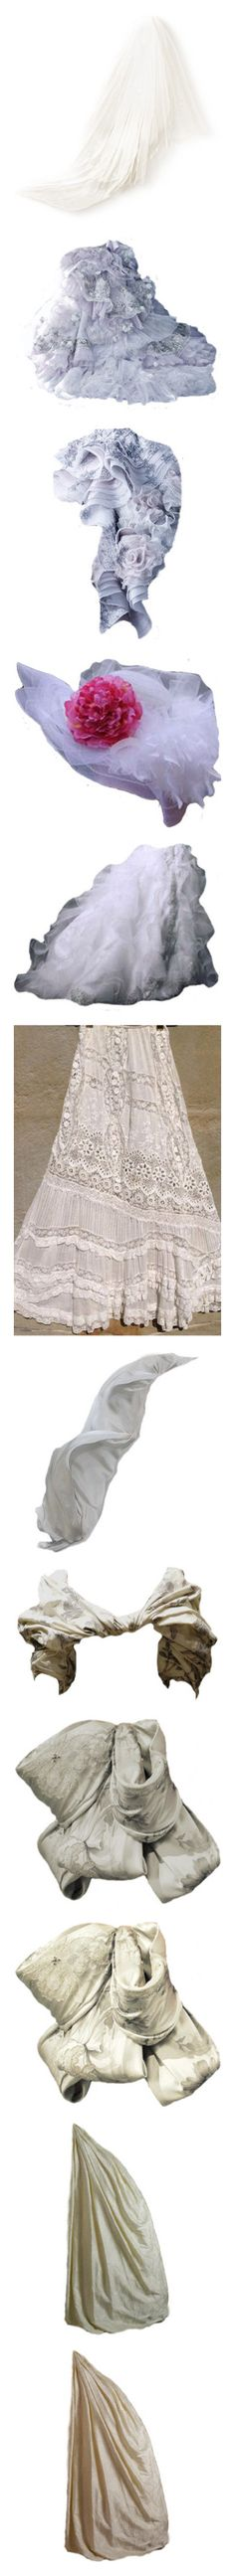 """""""doll junque3 - puffy skirt makings ..."""" by confusgrk ❤ liked on Polyvore featuring effects, fabric, wedding, skirts, accessories, backgrounds, fillers, embellishments, detail and draperie"""